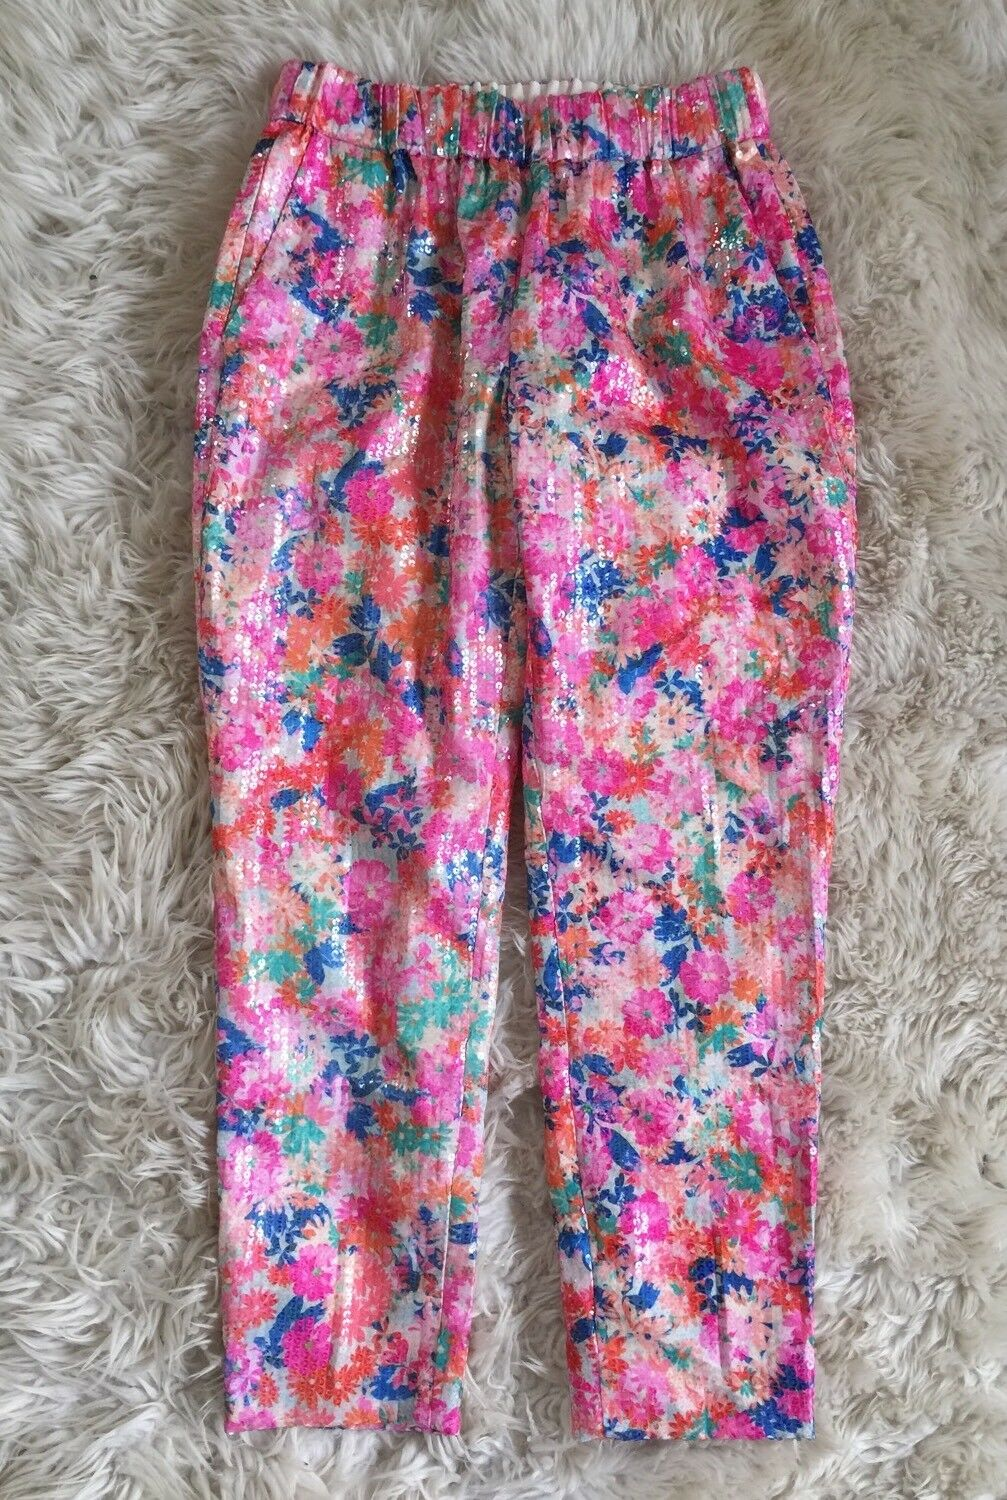 New Jcrew Brushstroke Marigold Floral Sequin Easy Pants Size 6 Pink bluee RARE